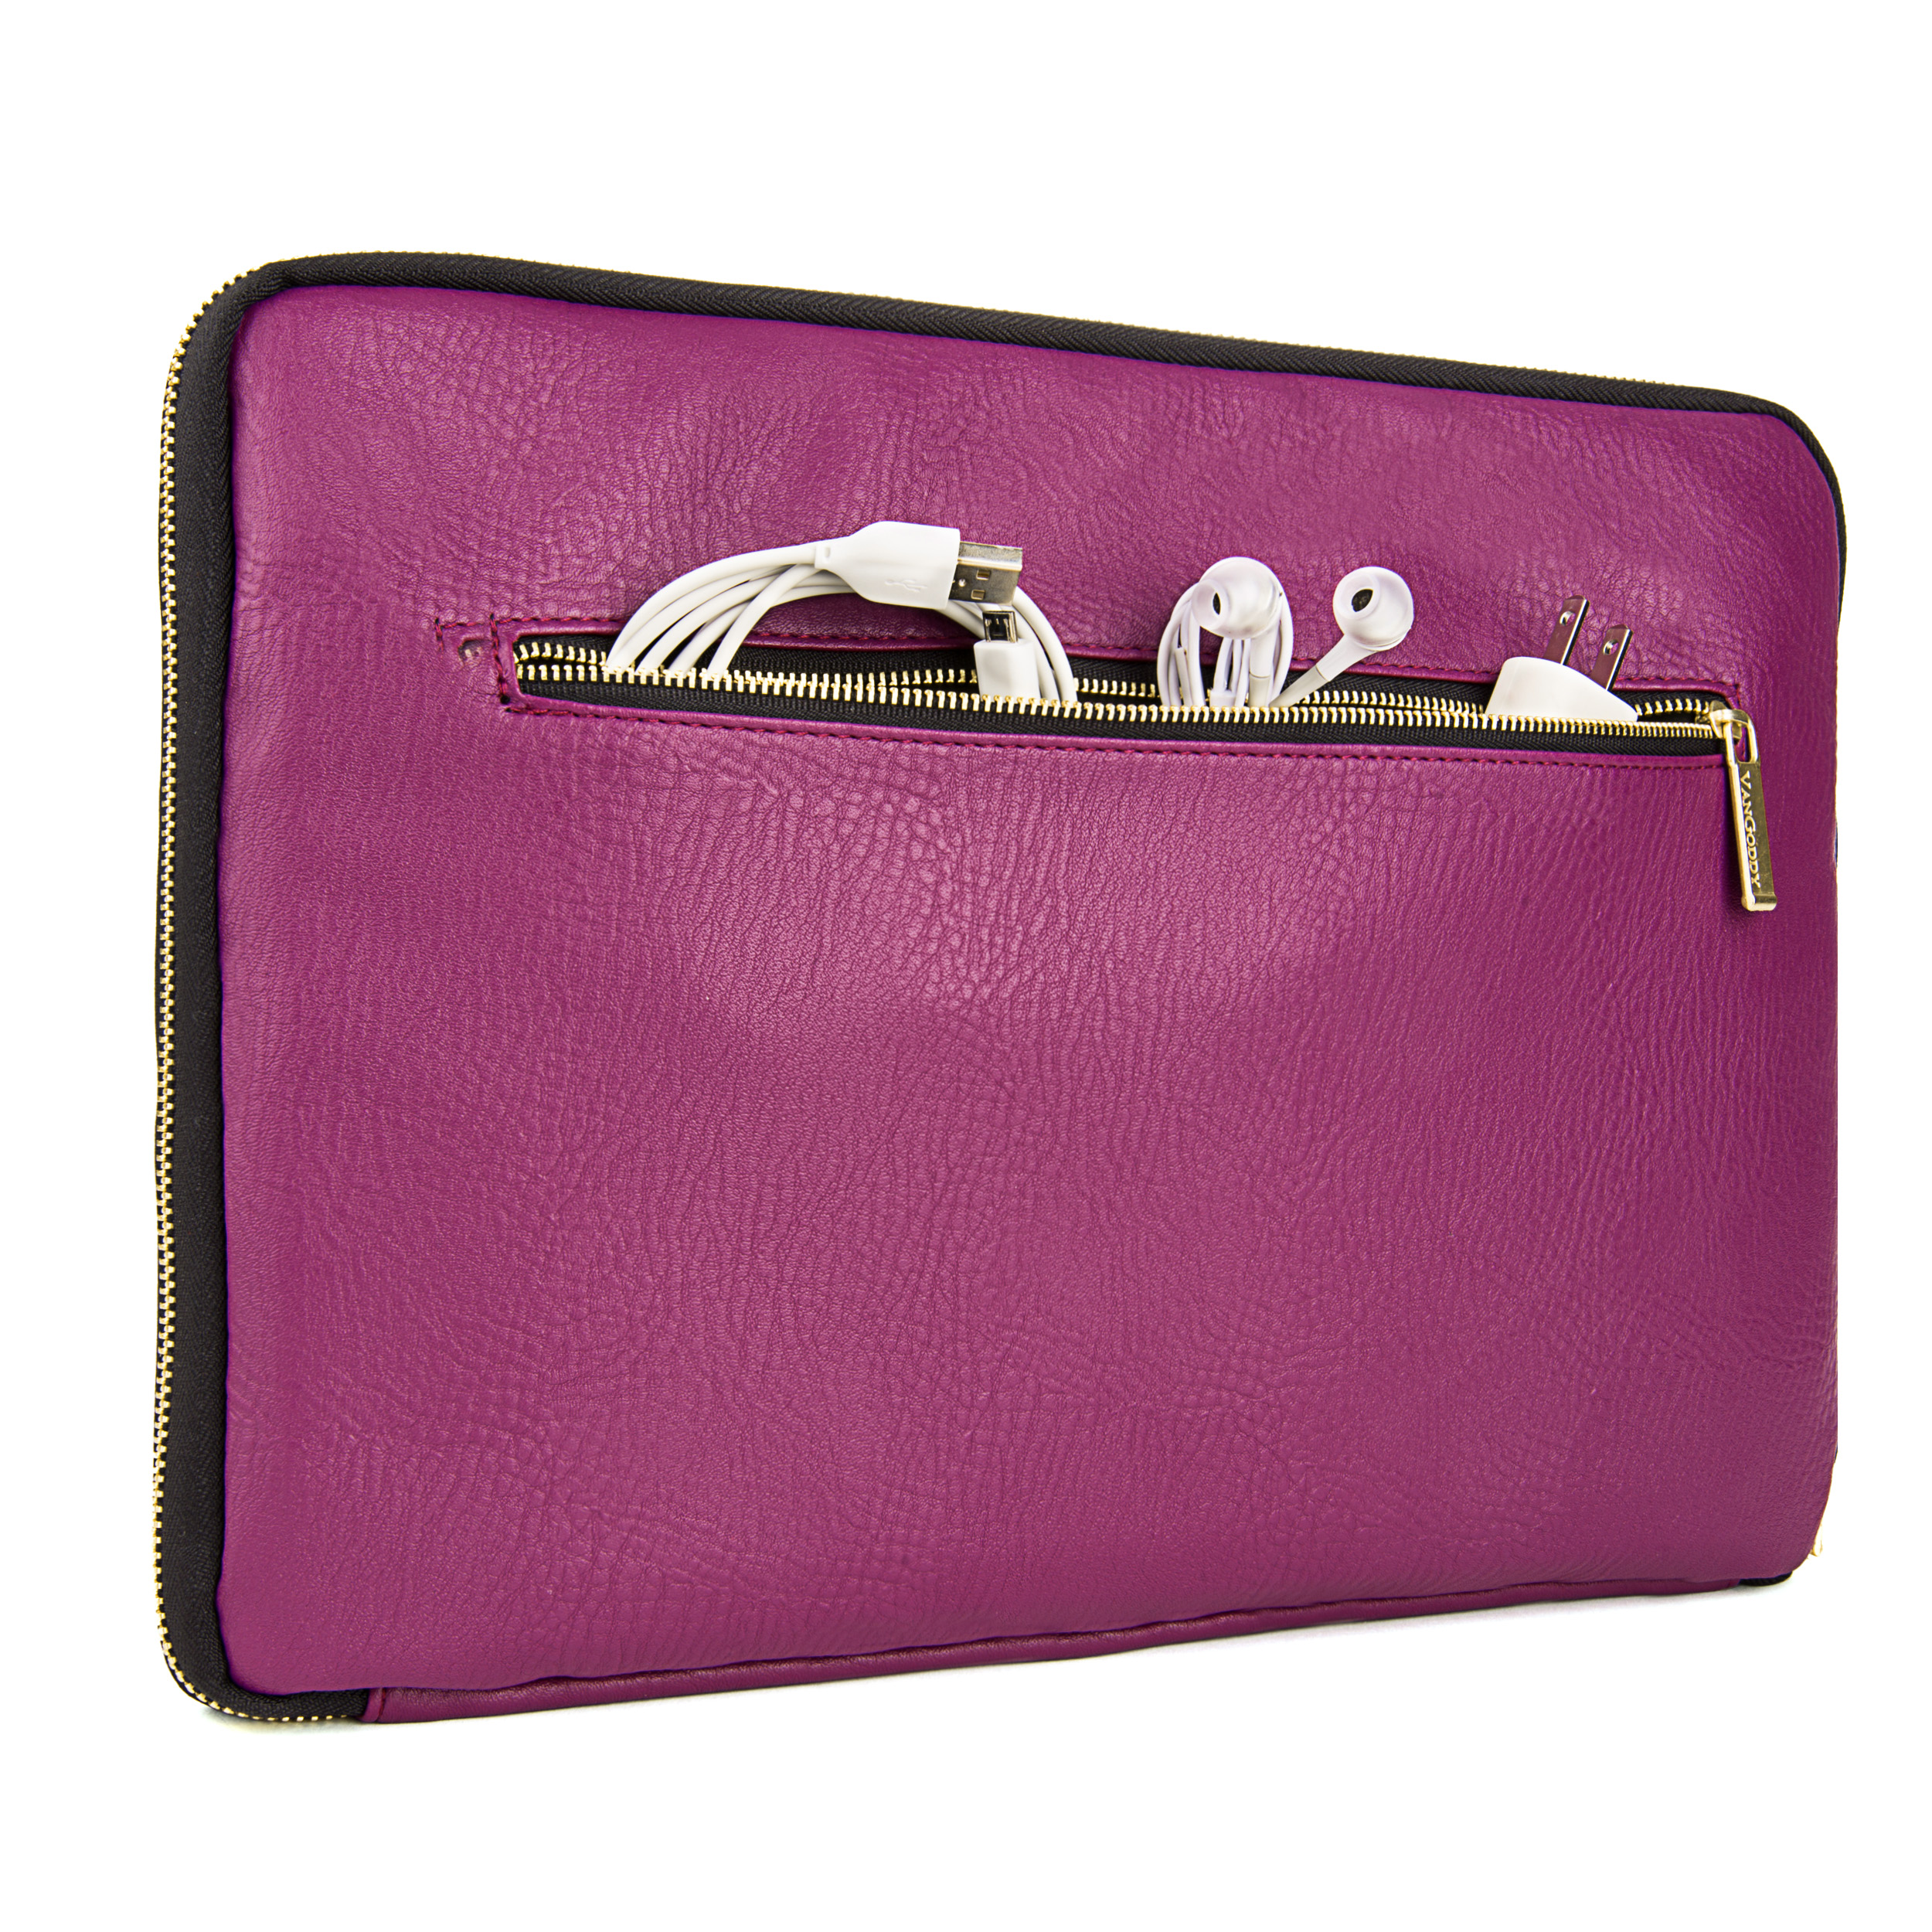 "Irista 13"" Tablet Sleeve (Purple/Black)"